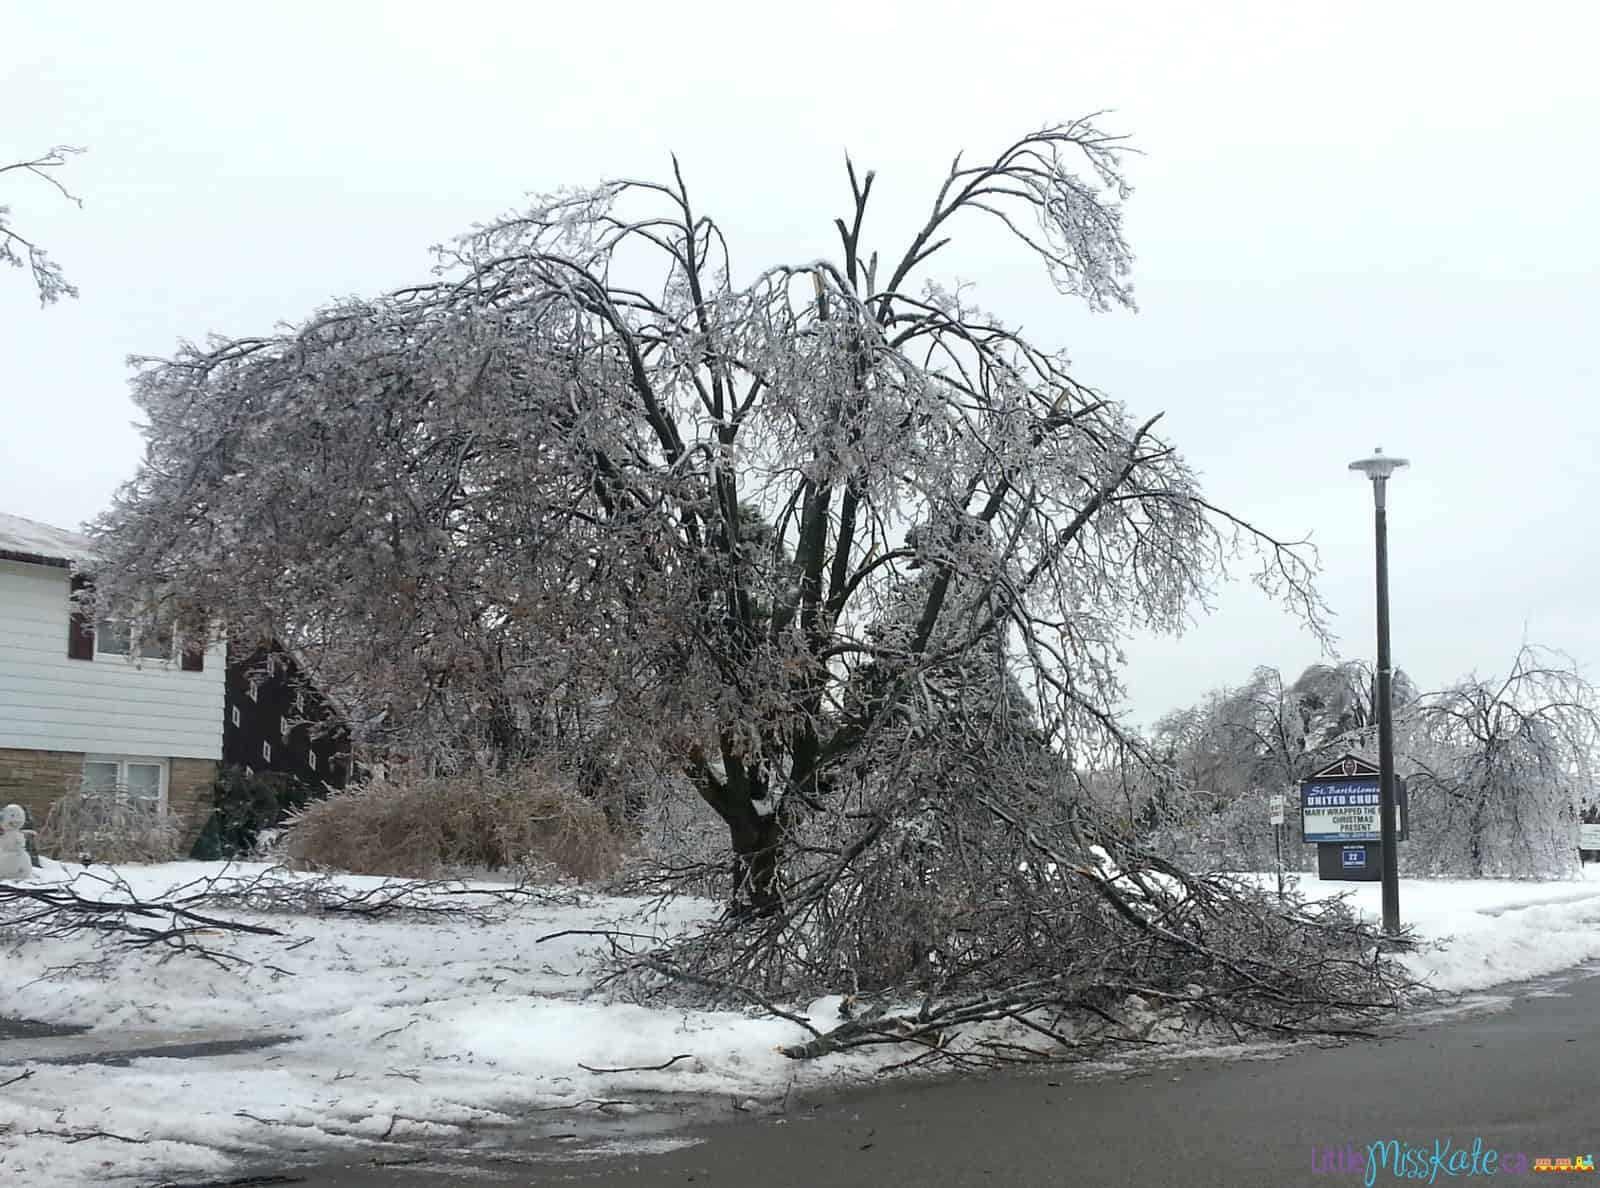 Ice storm 2013 what to pack in emergency preparedness kit